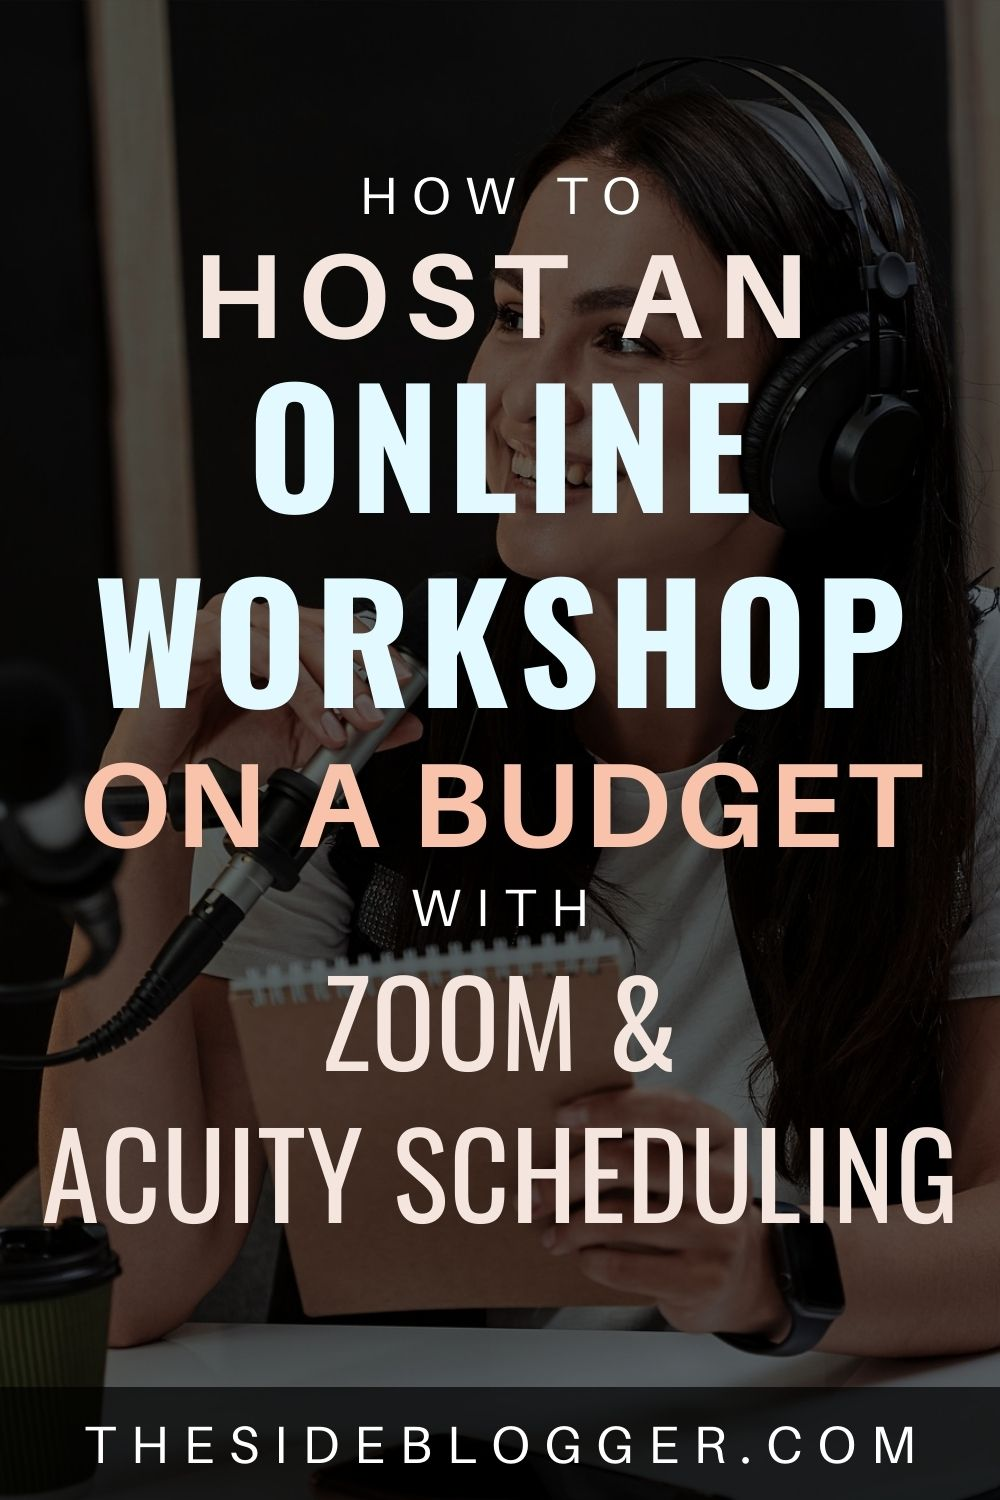 how to host an online workshop with zoom and acuity scheduling